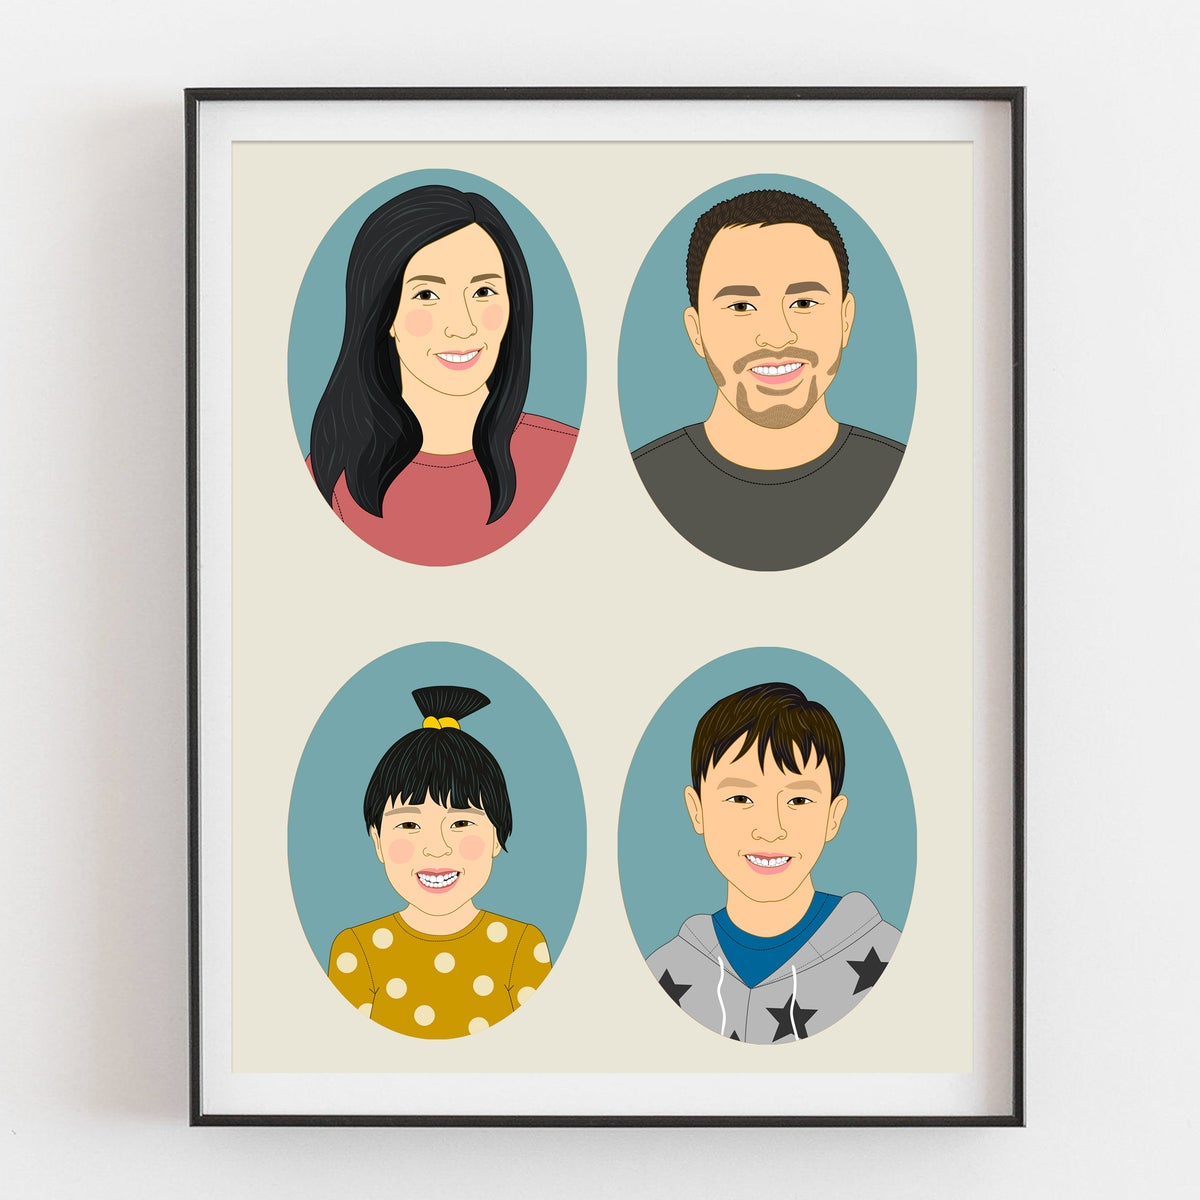 Image of Family portrait of 4 people.